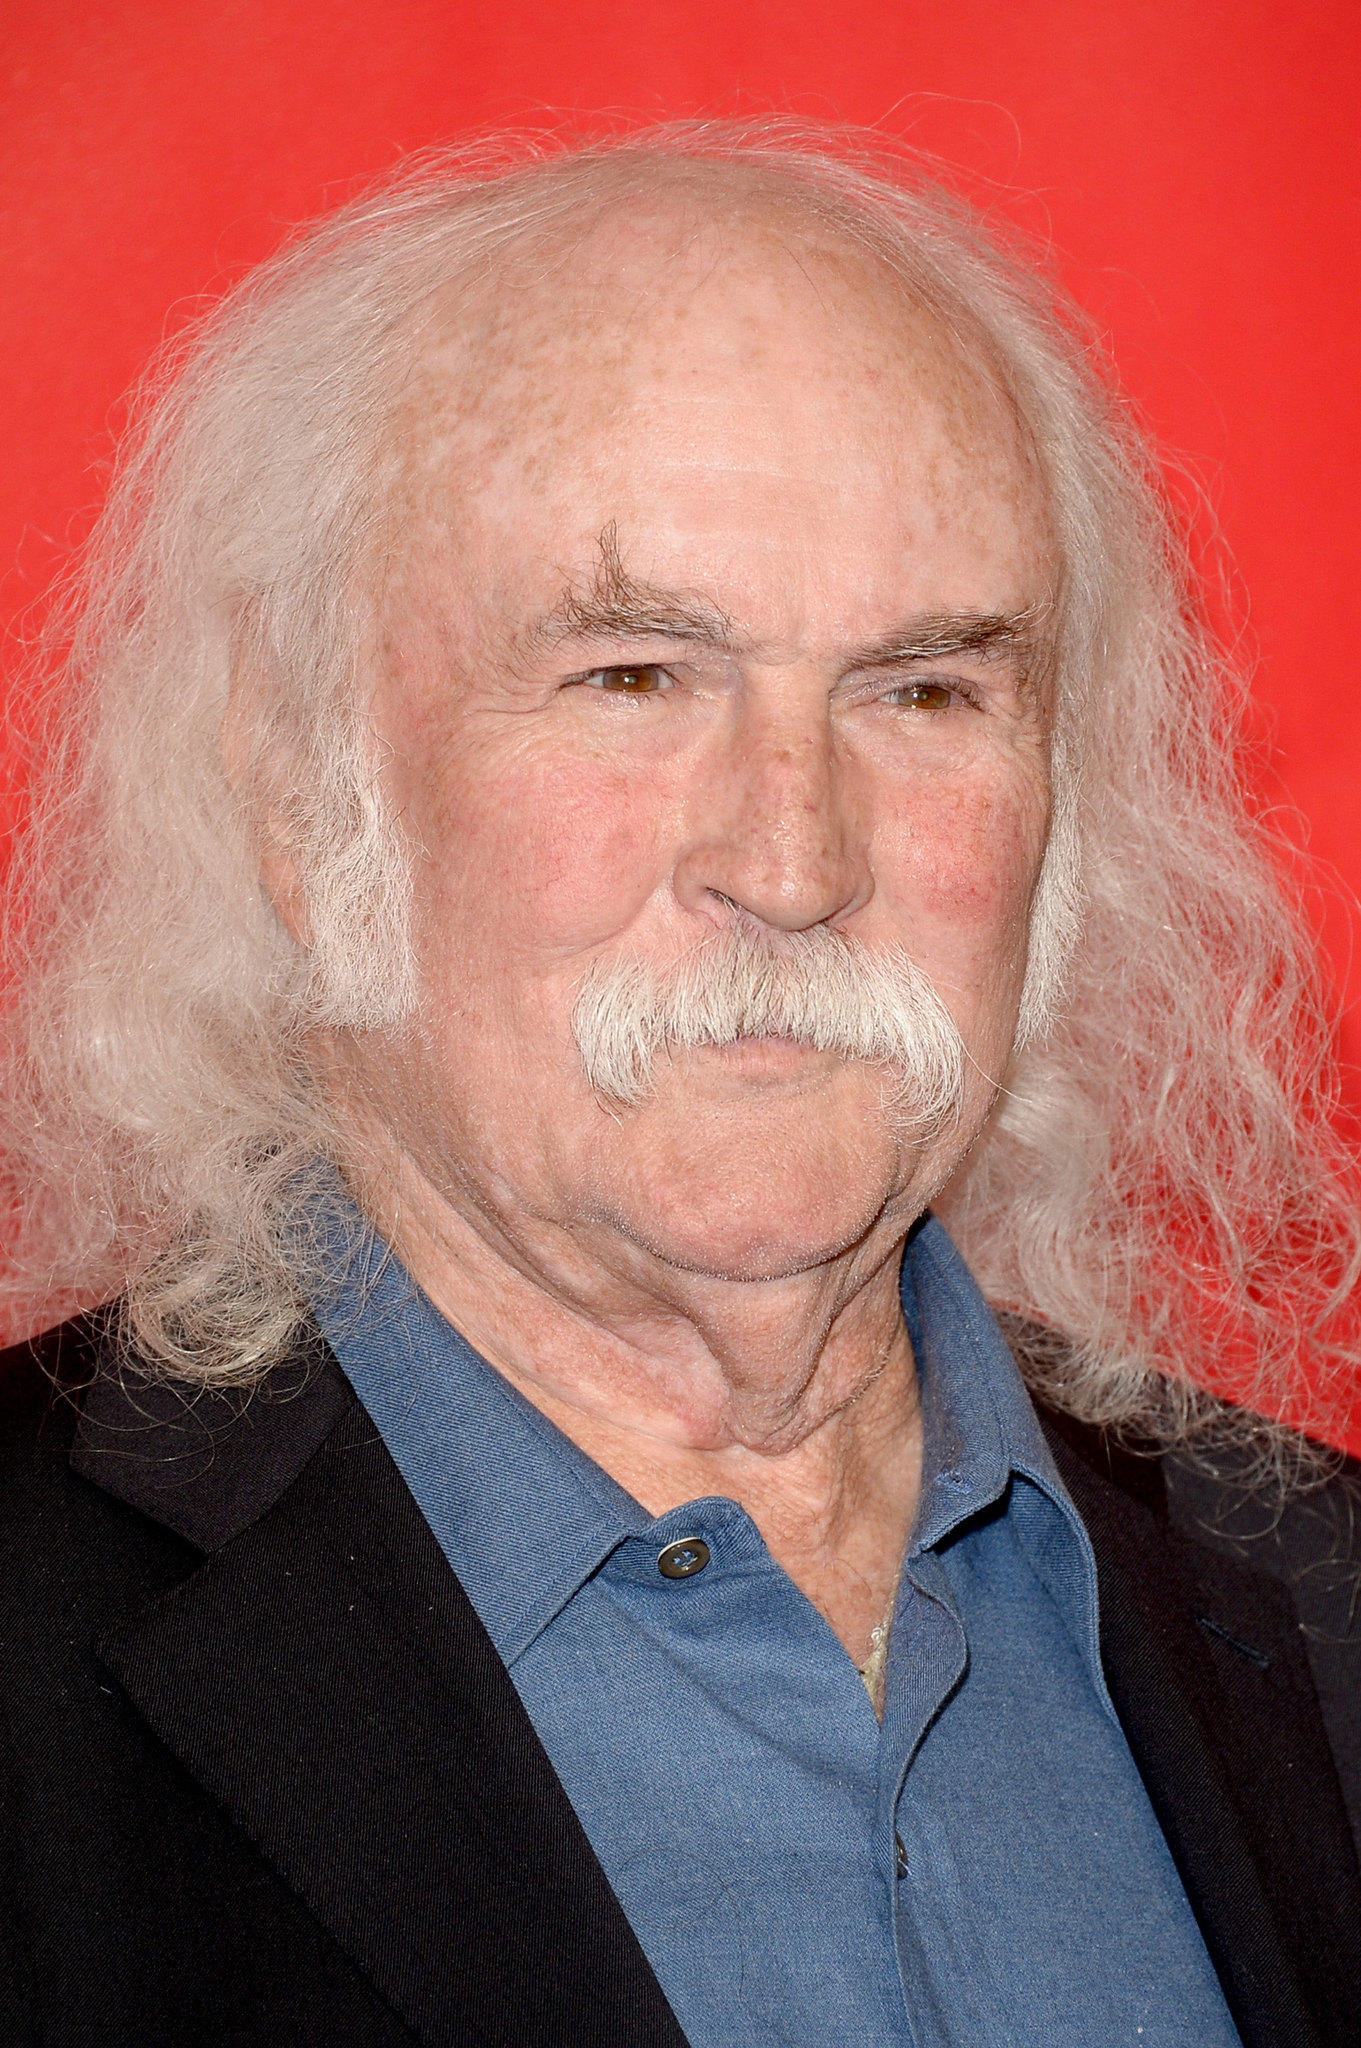 Singer David Crosby attends The 2014 MusiCares Person Of The Year Gala Honoring Carole King.